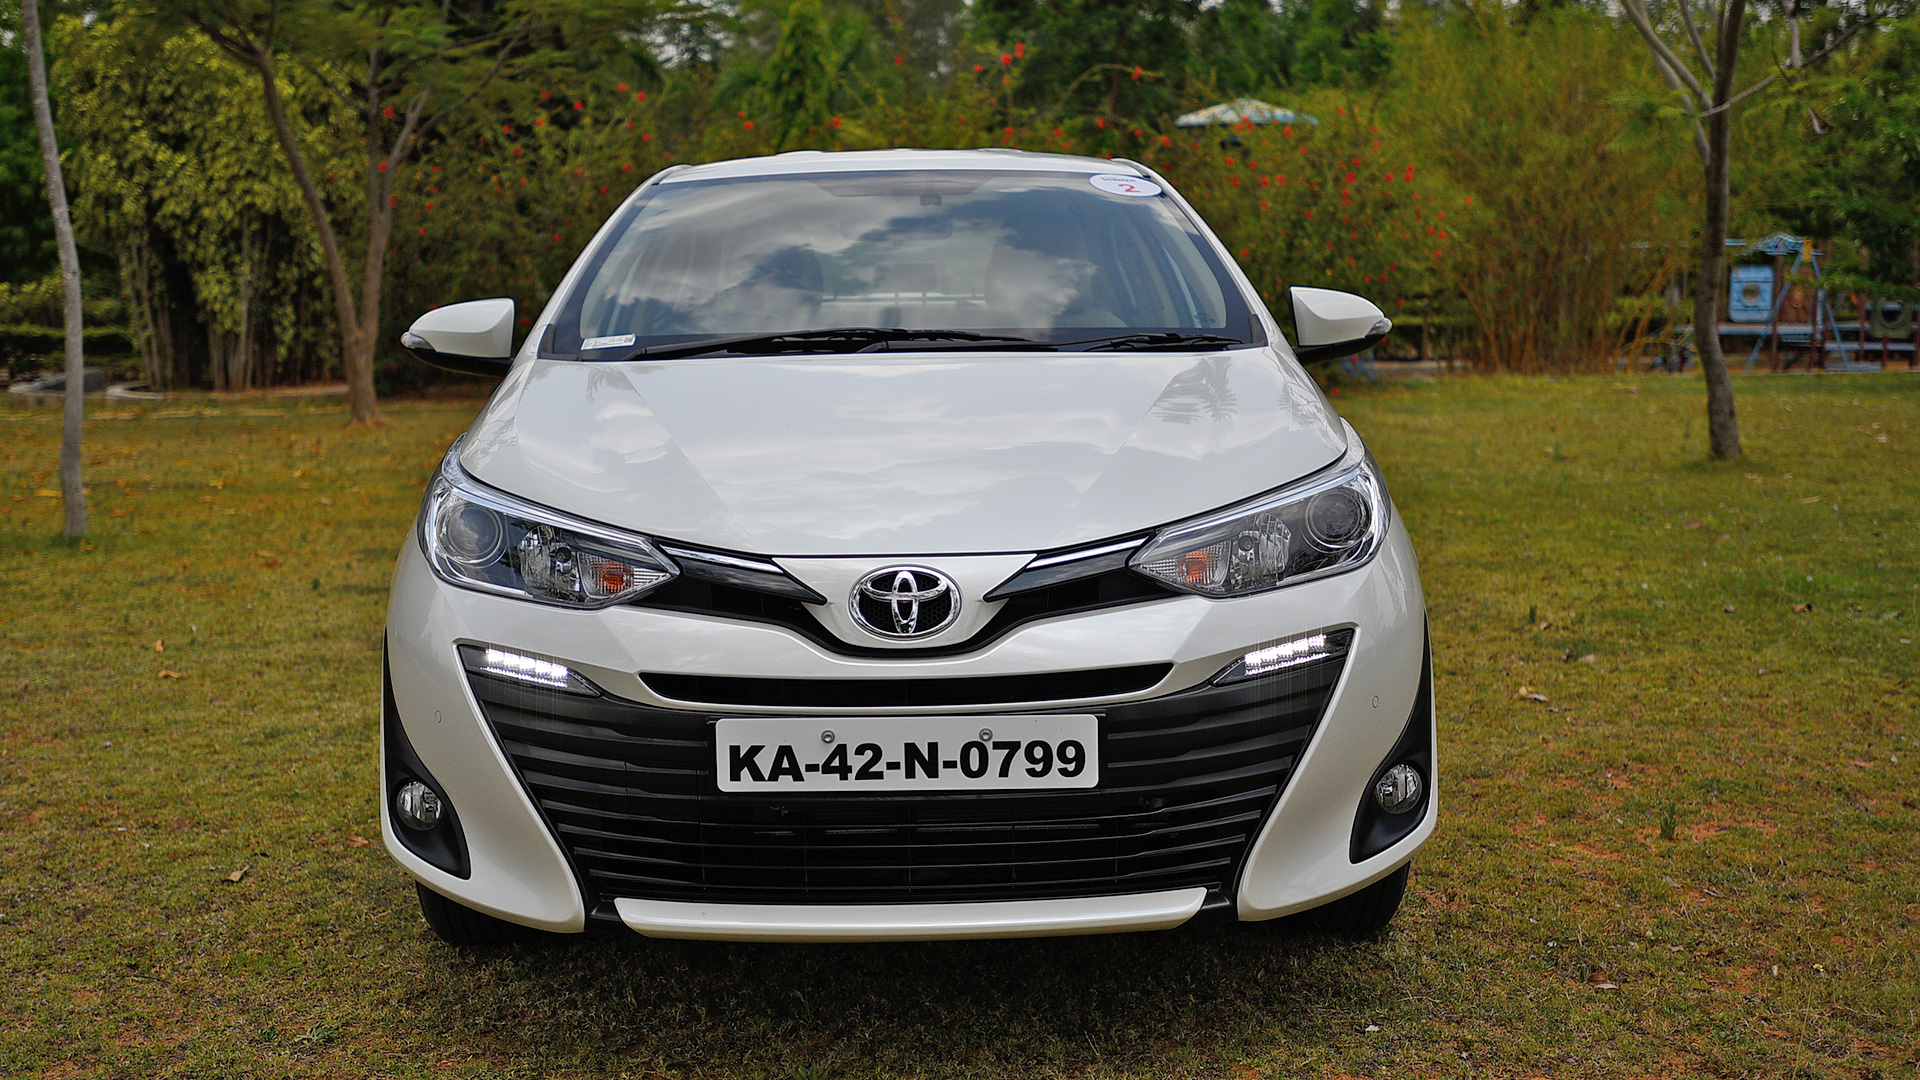 toyota yaris 2018 j cvt price mileage reviews specification gallery overdrive. Black Bedroom Furniture Sets. Home Design Ideas